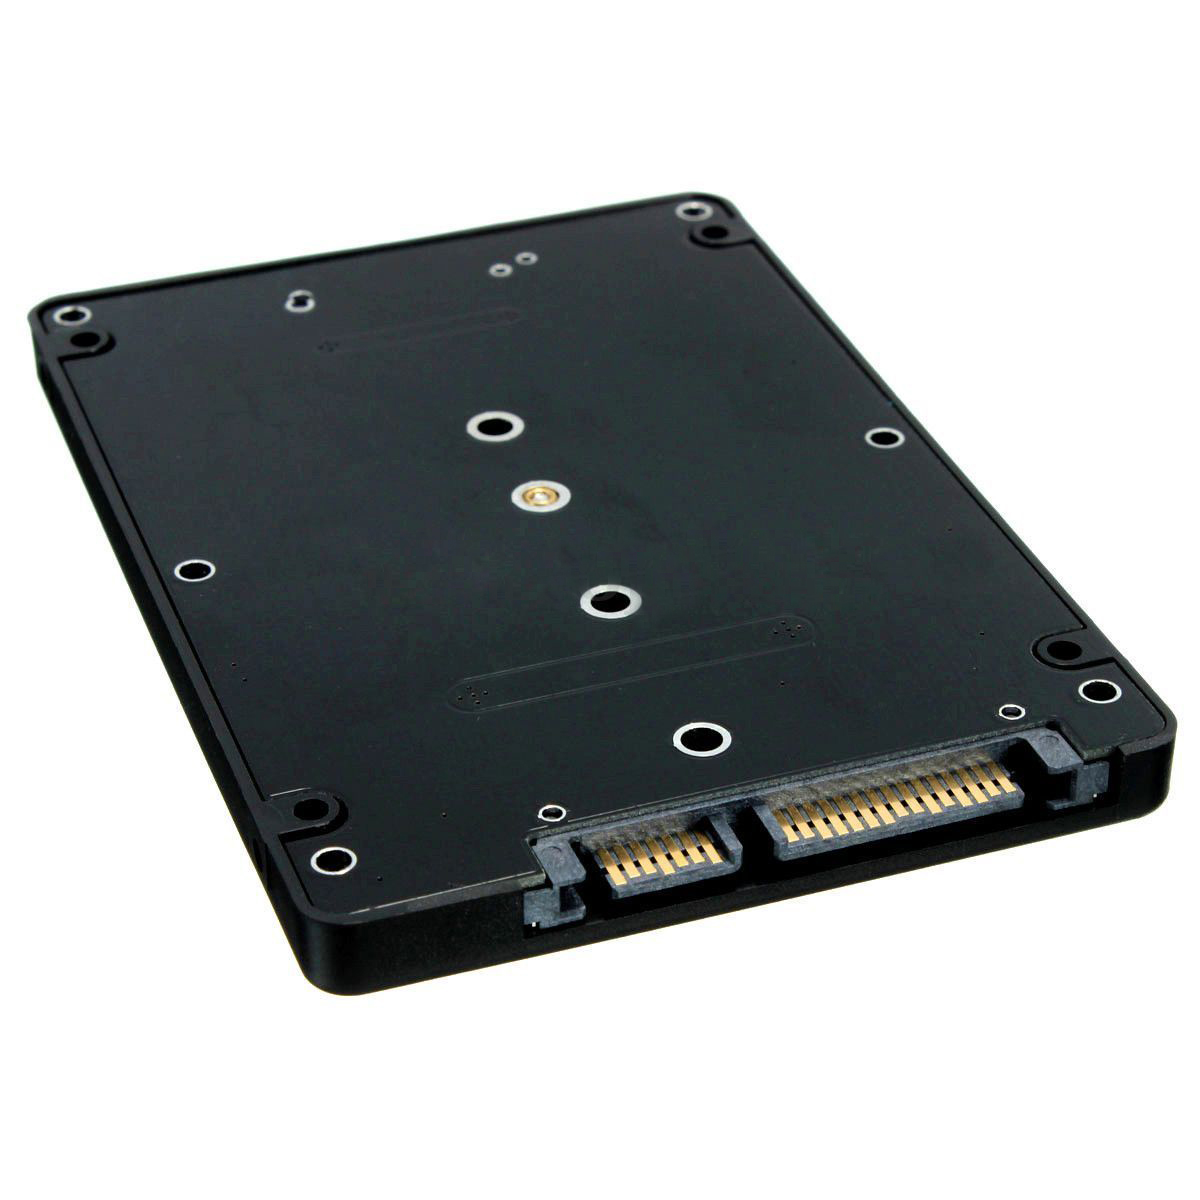 M.2 NGFF (SATA) SSD To 2.5 Inch SATA Adapter Card 8mm Thickness Enclosure